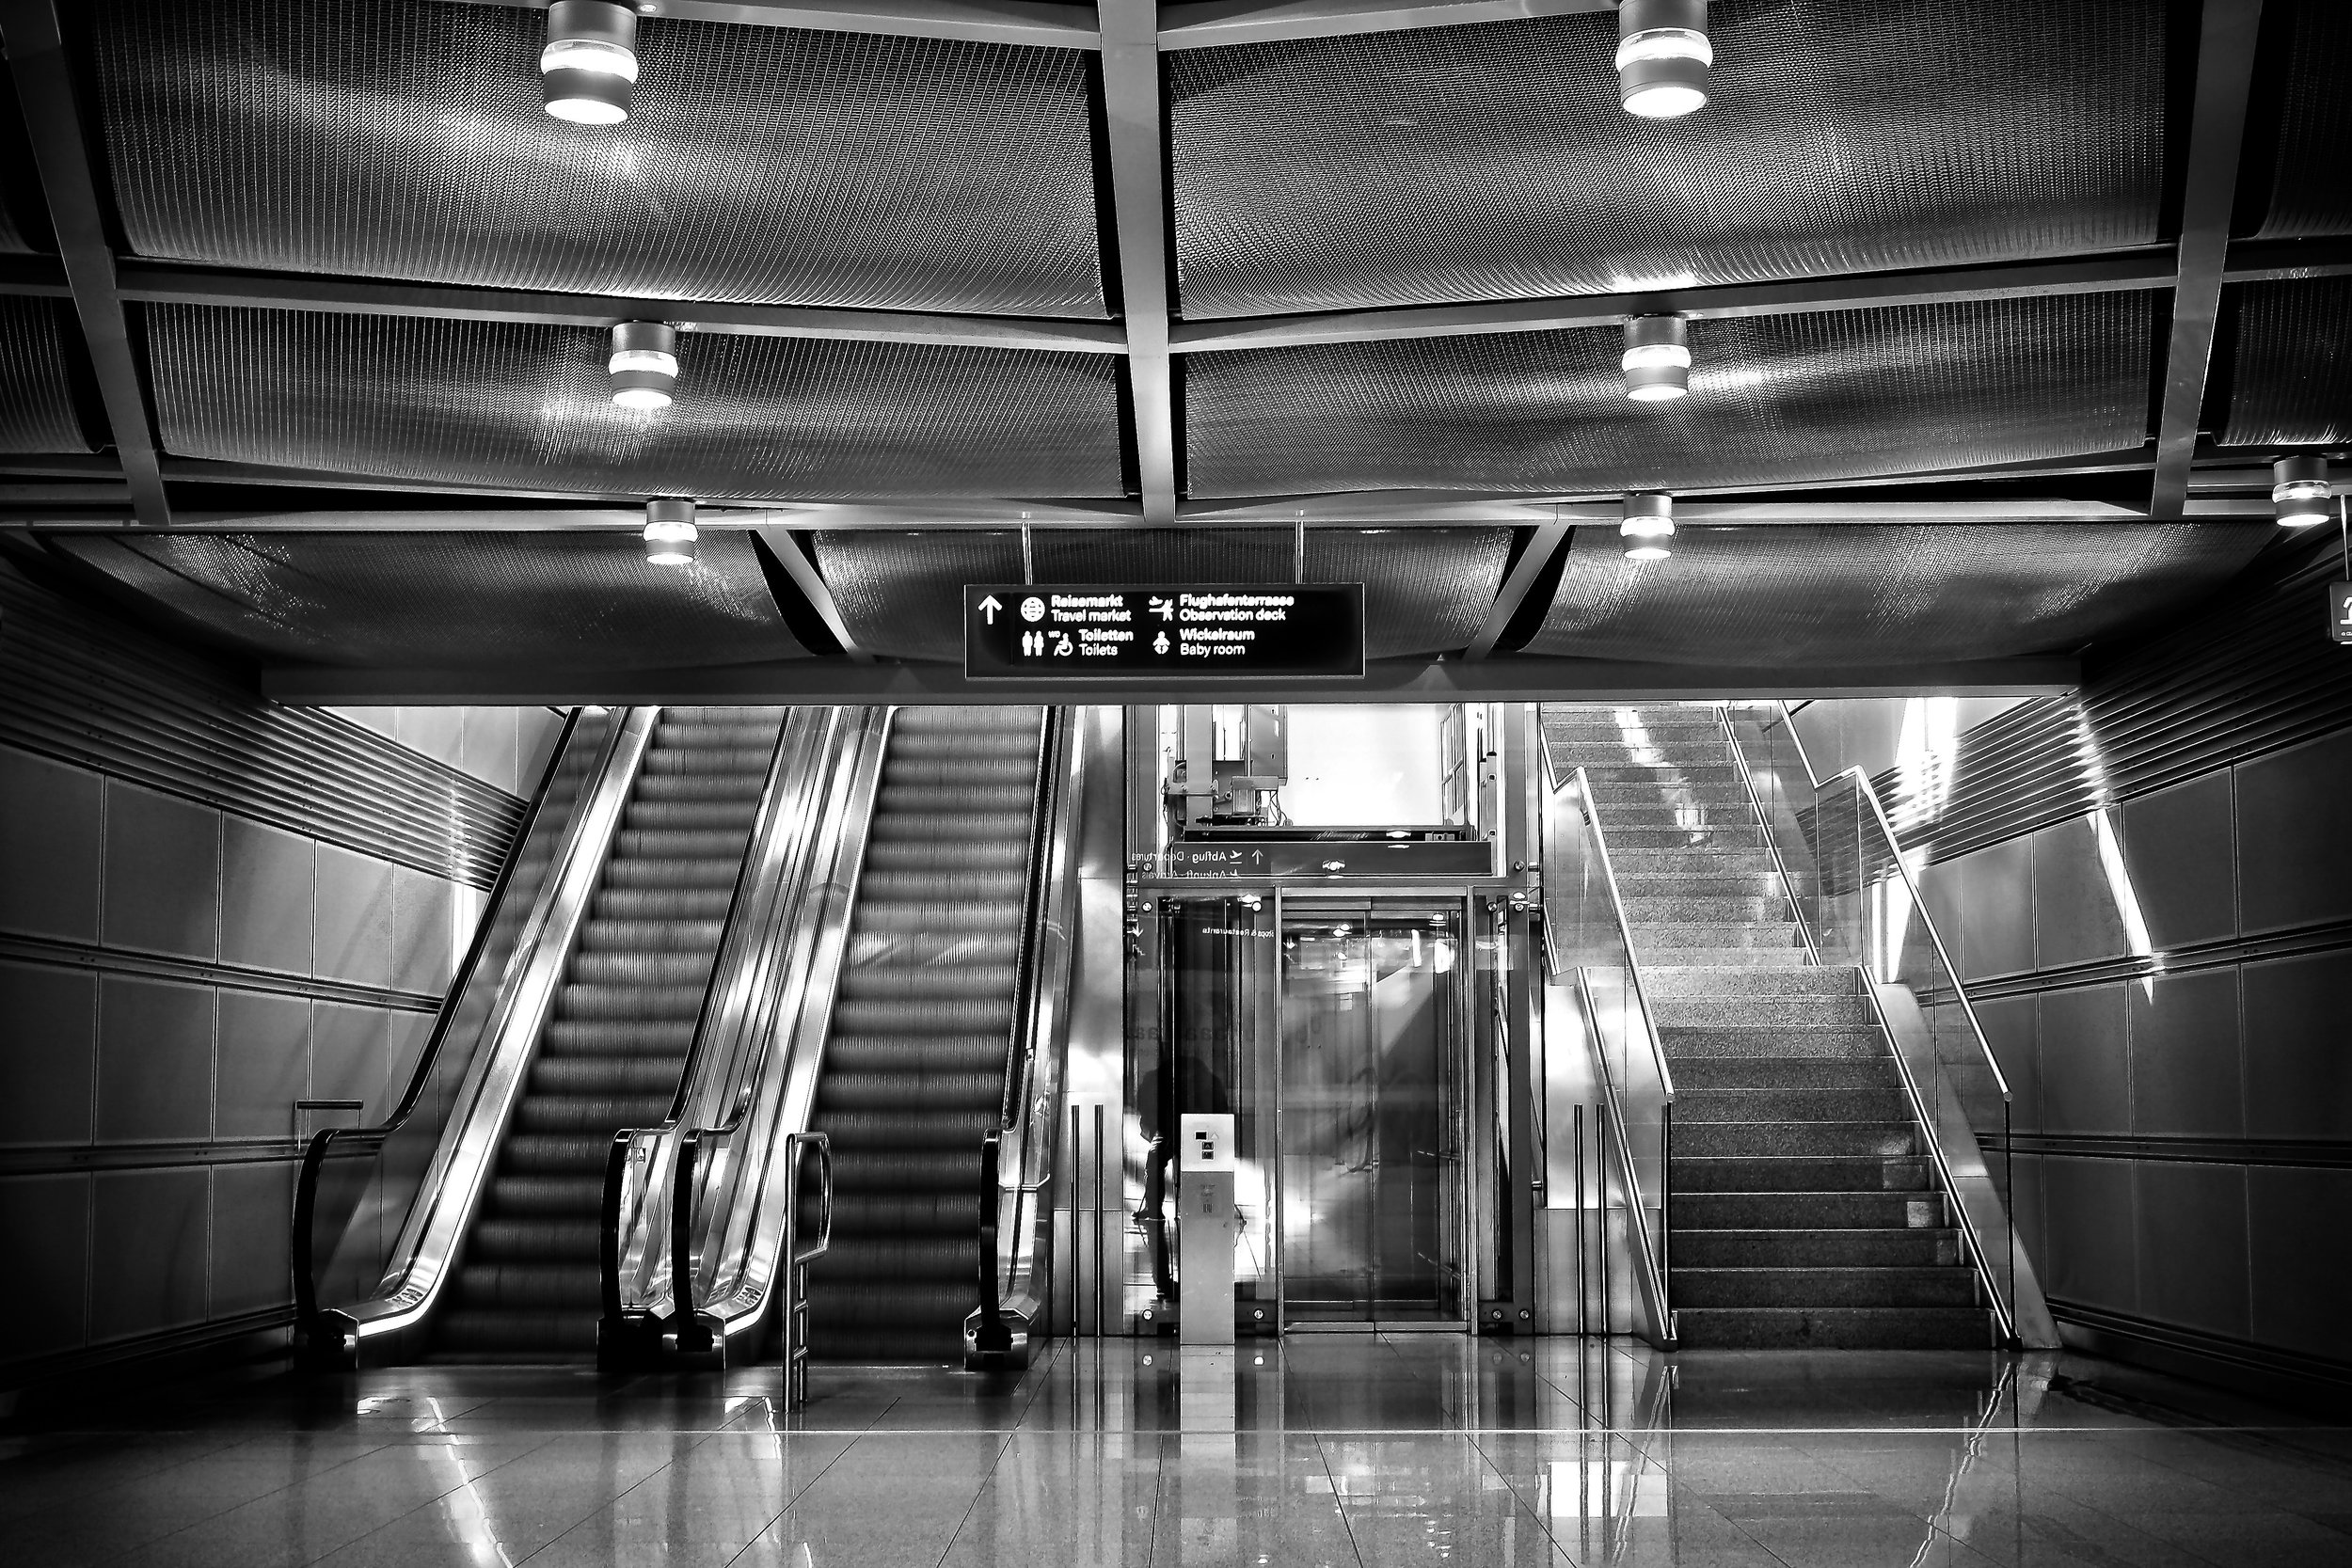 stairs airport-architecture-black-and-white-358545.jpg